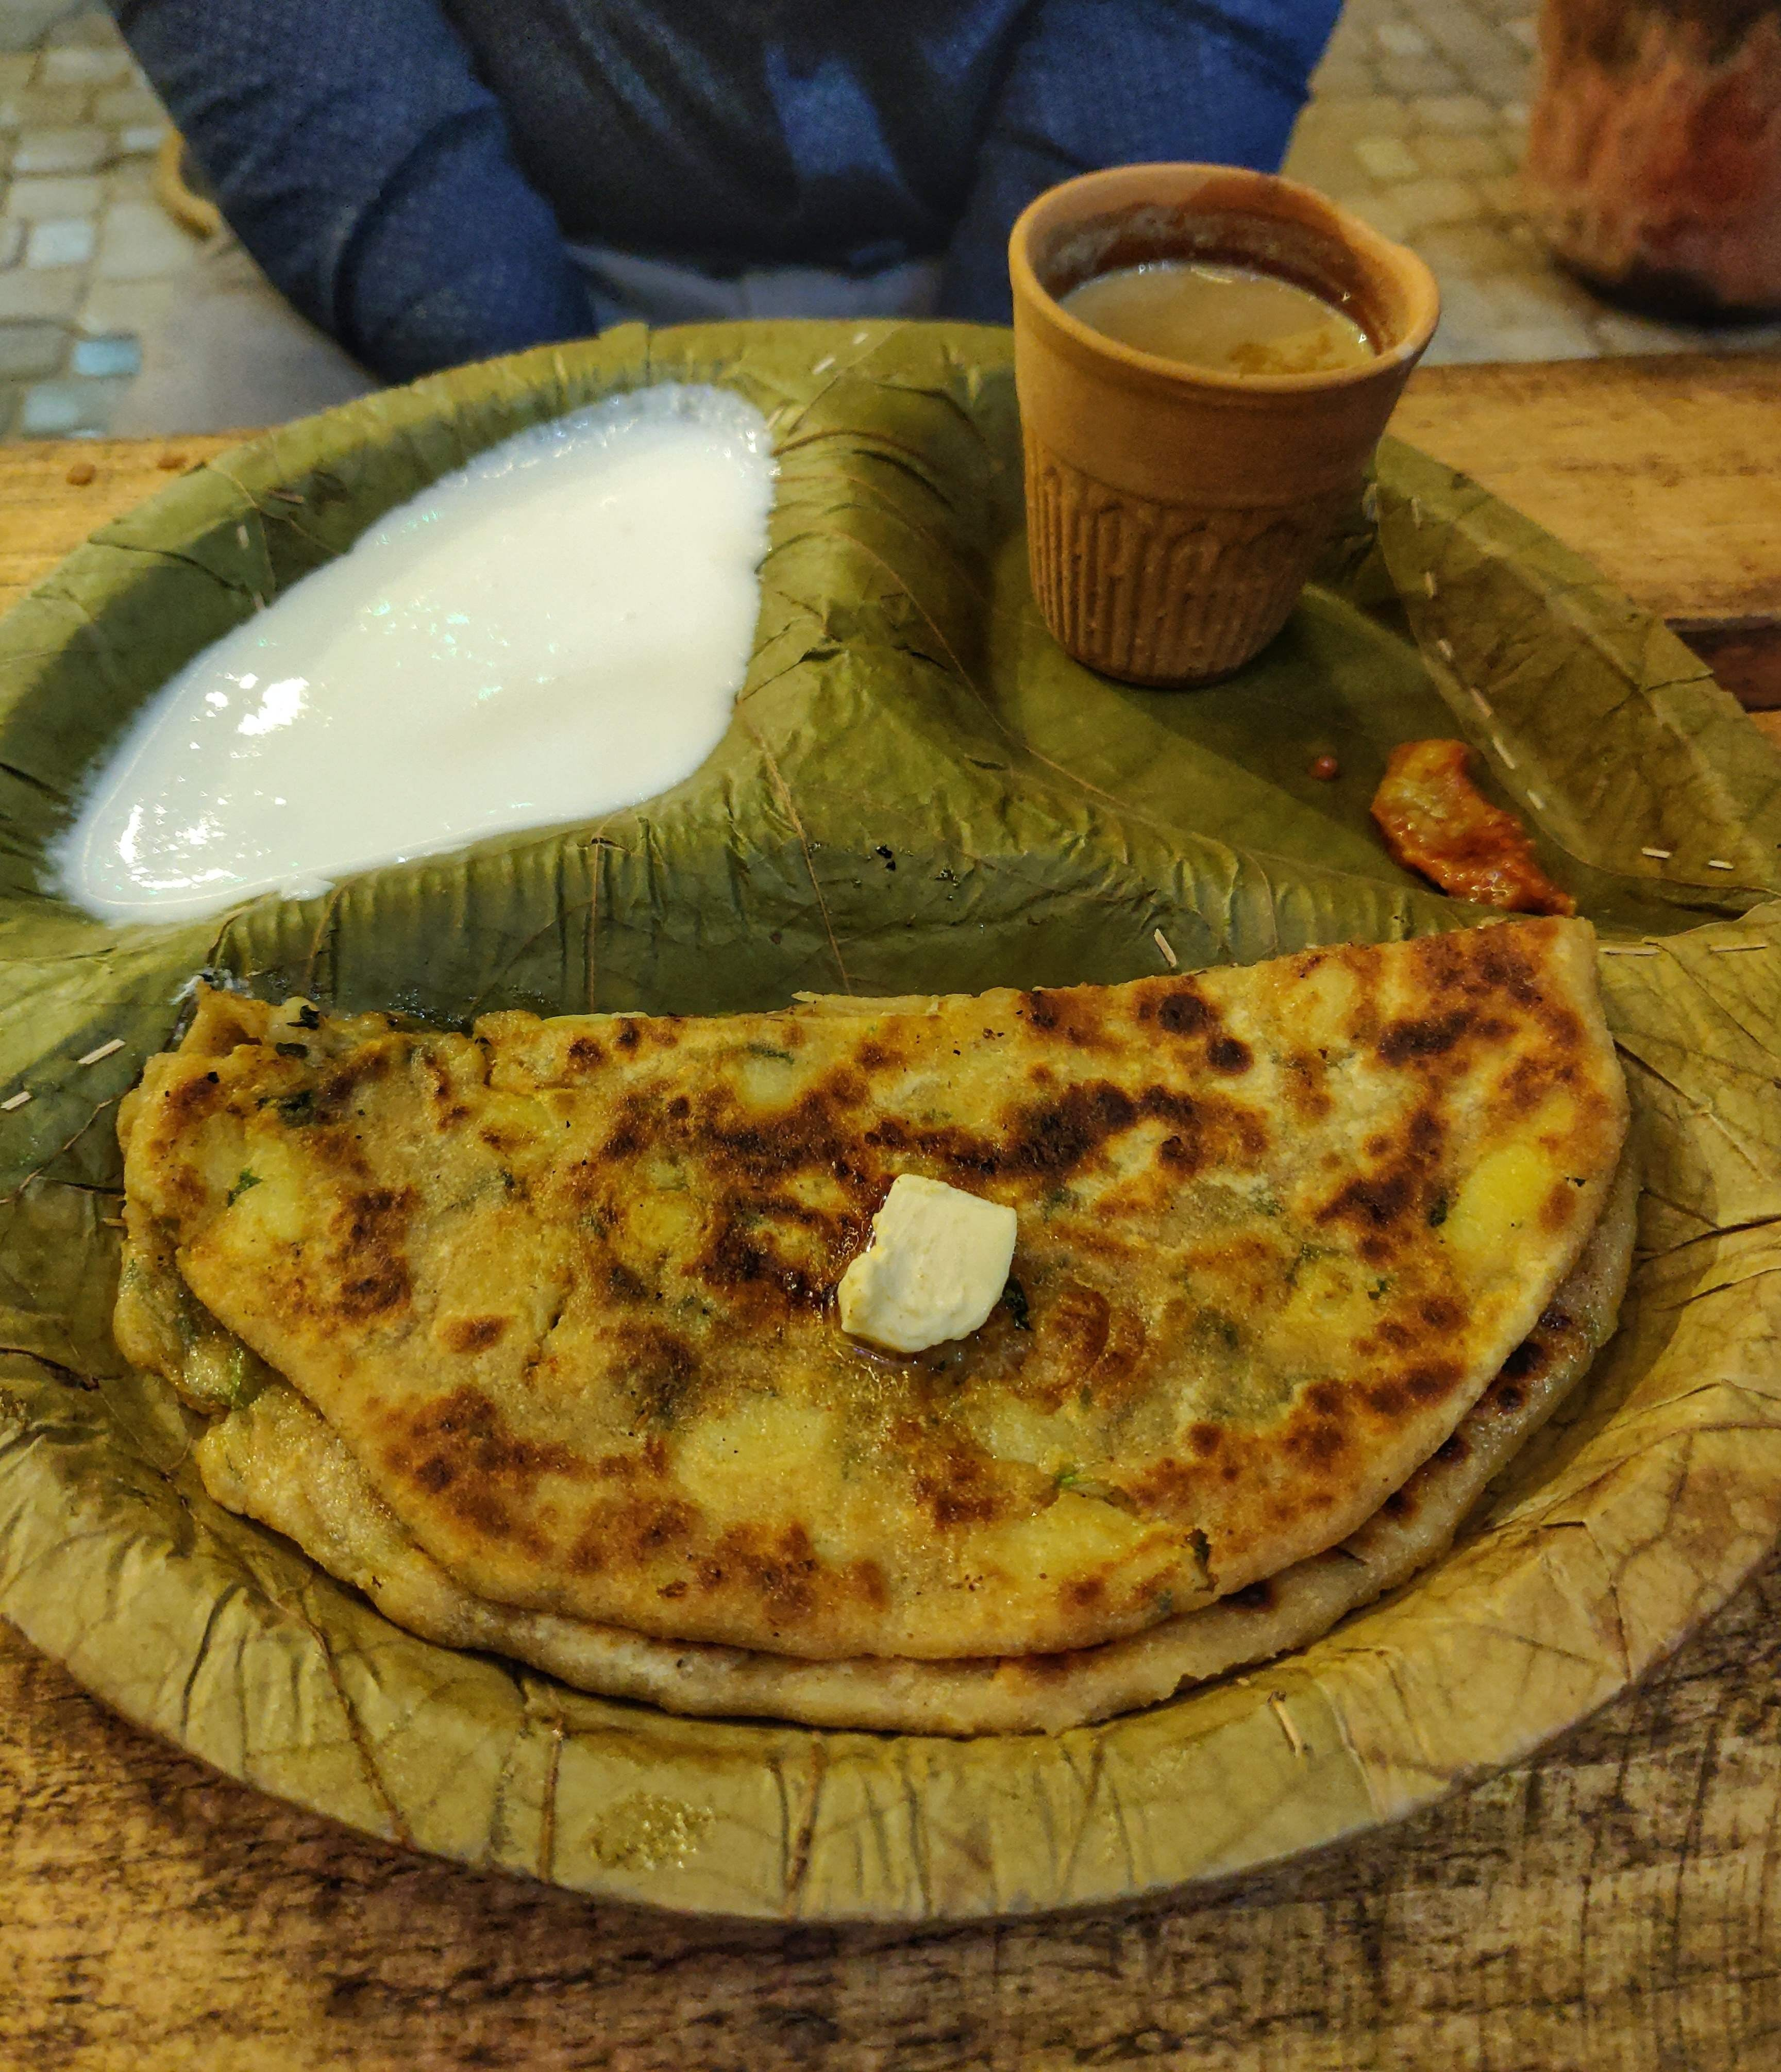 Dish,Food,Cuisine,Ingredient,Paratha,Baked goods,Flatbread,Pannekoek,Staple food,Murtabak